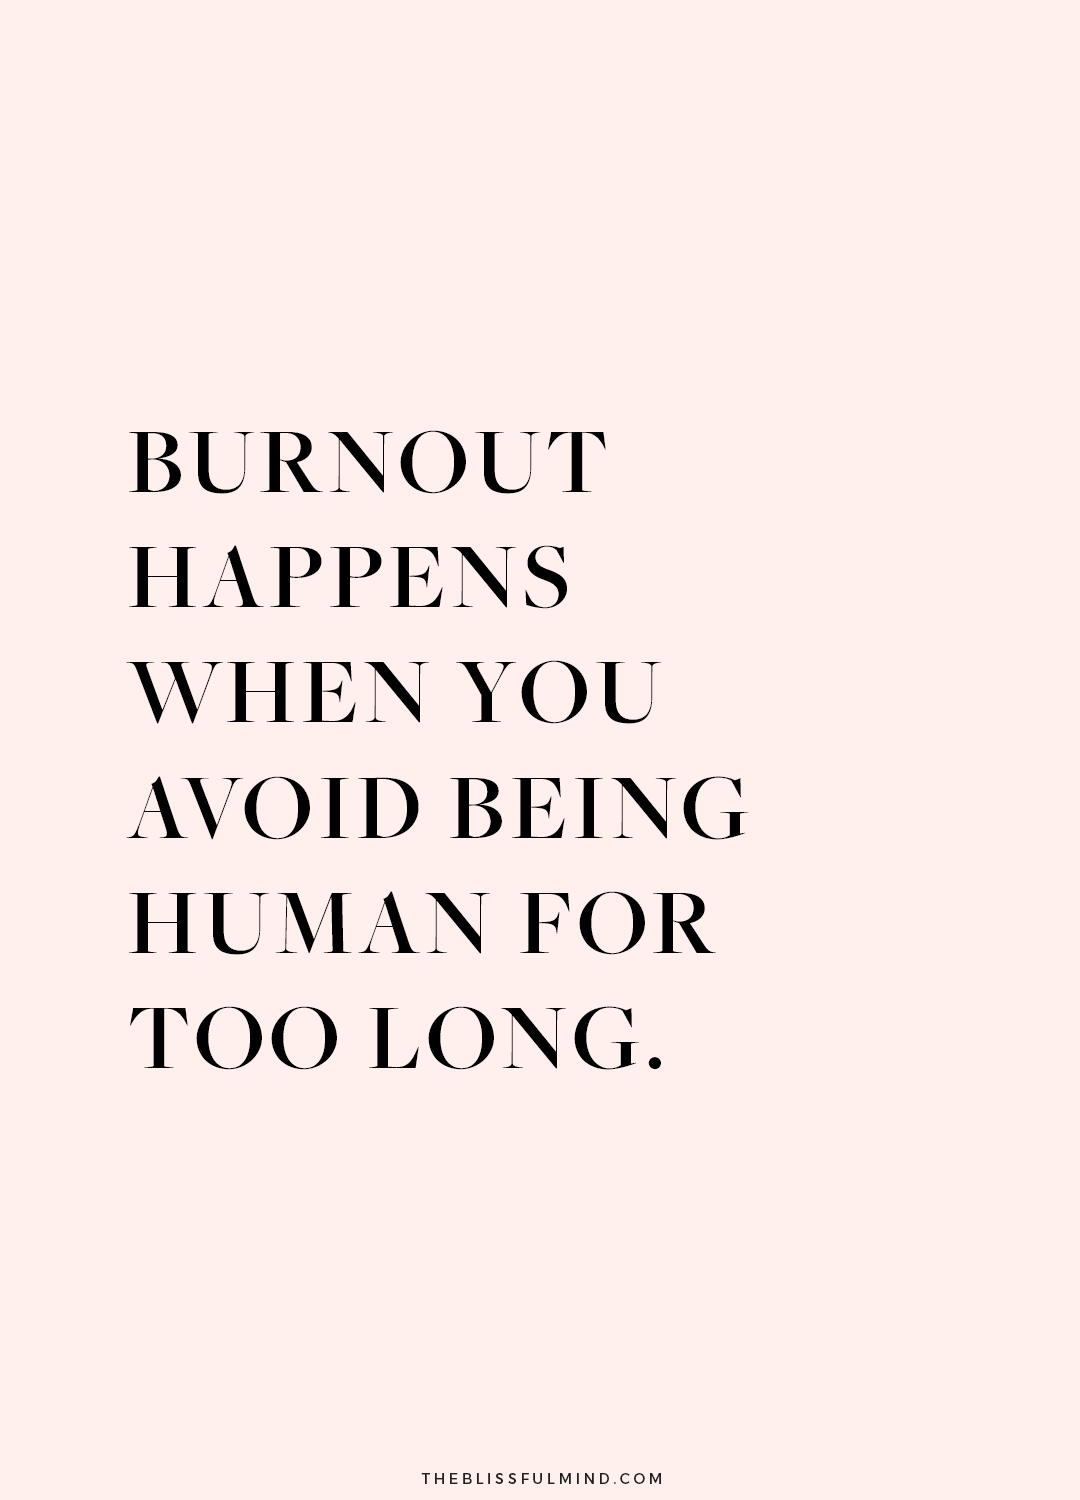 7 Signs of Burnout And What To Do About It - The Blissful Mind